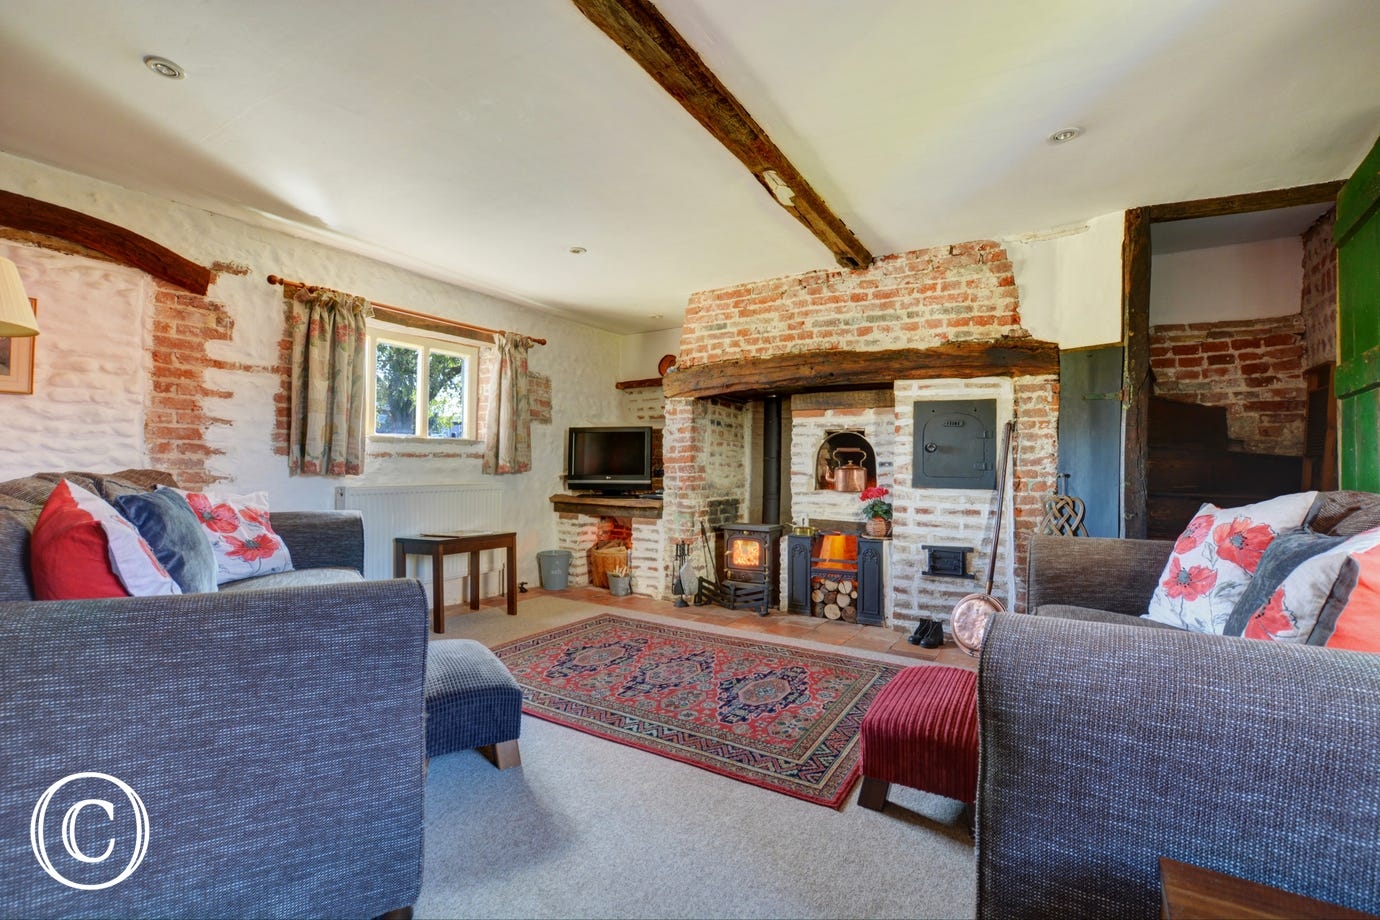 Sitting room with lots of character, inglenook fireplace with pot-bellied stove and an original ornamental baker's oven